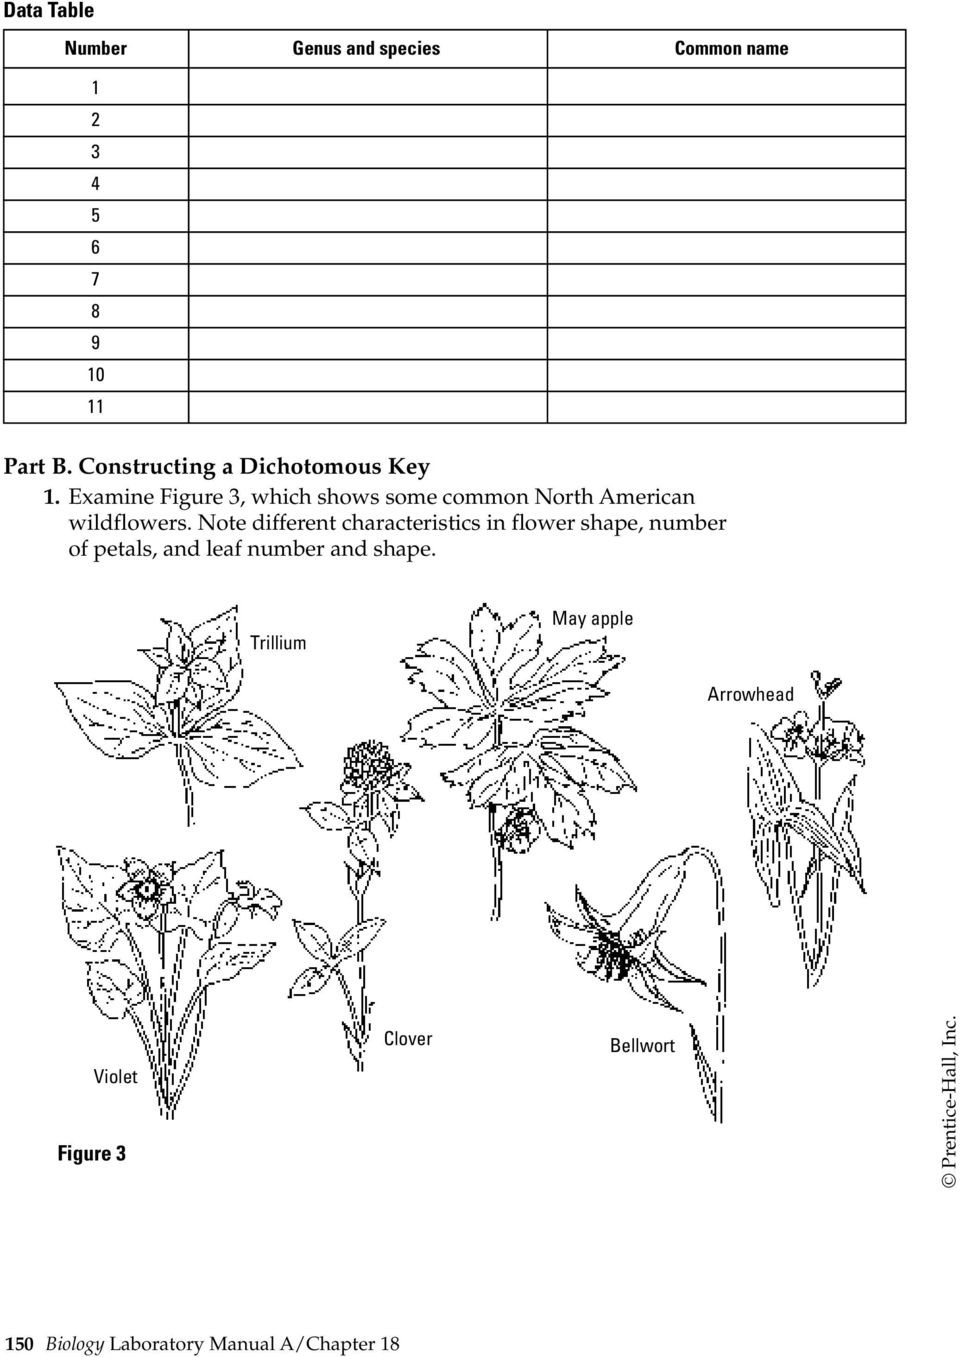 Dichotomous Key Worksheets Middle School Using and Constructing A Dichotomous Key Pdf Free Download